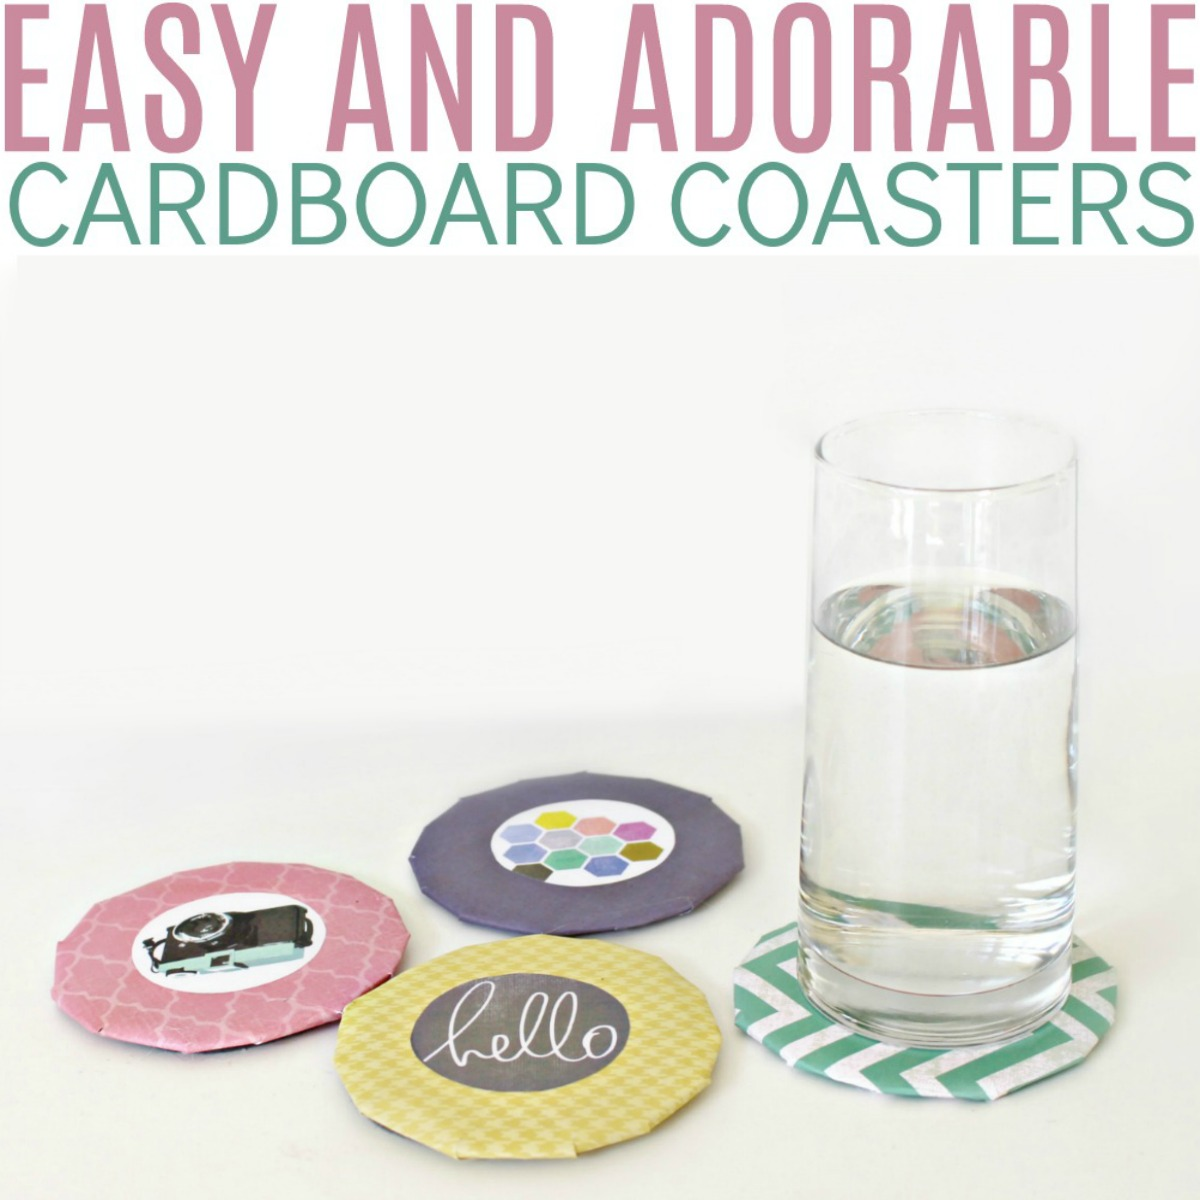 Adorable DIY Cardboard Coasters